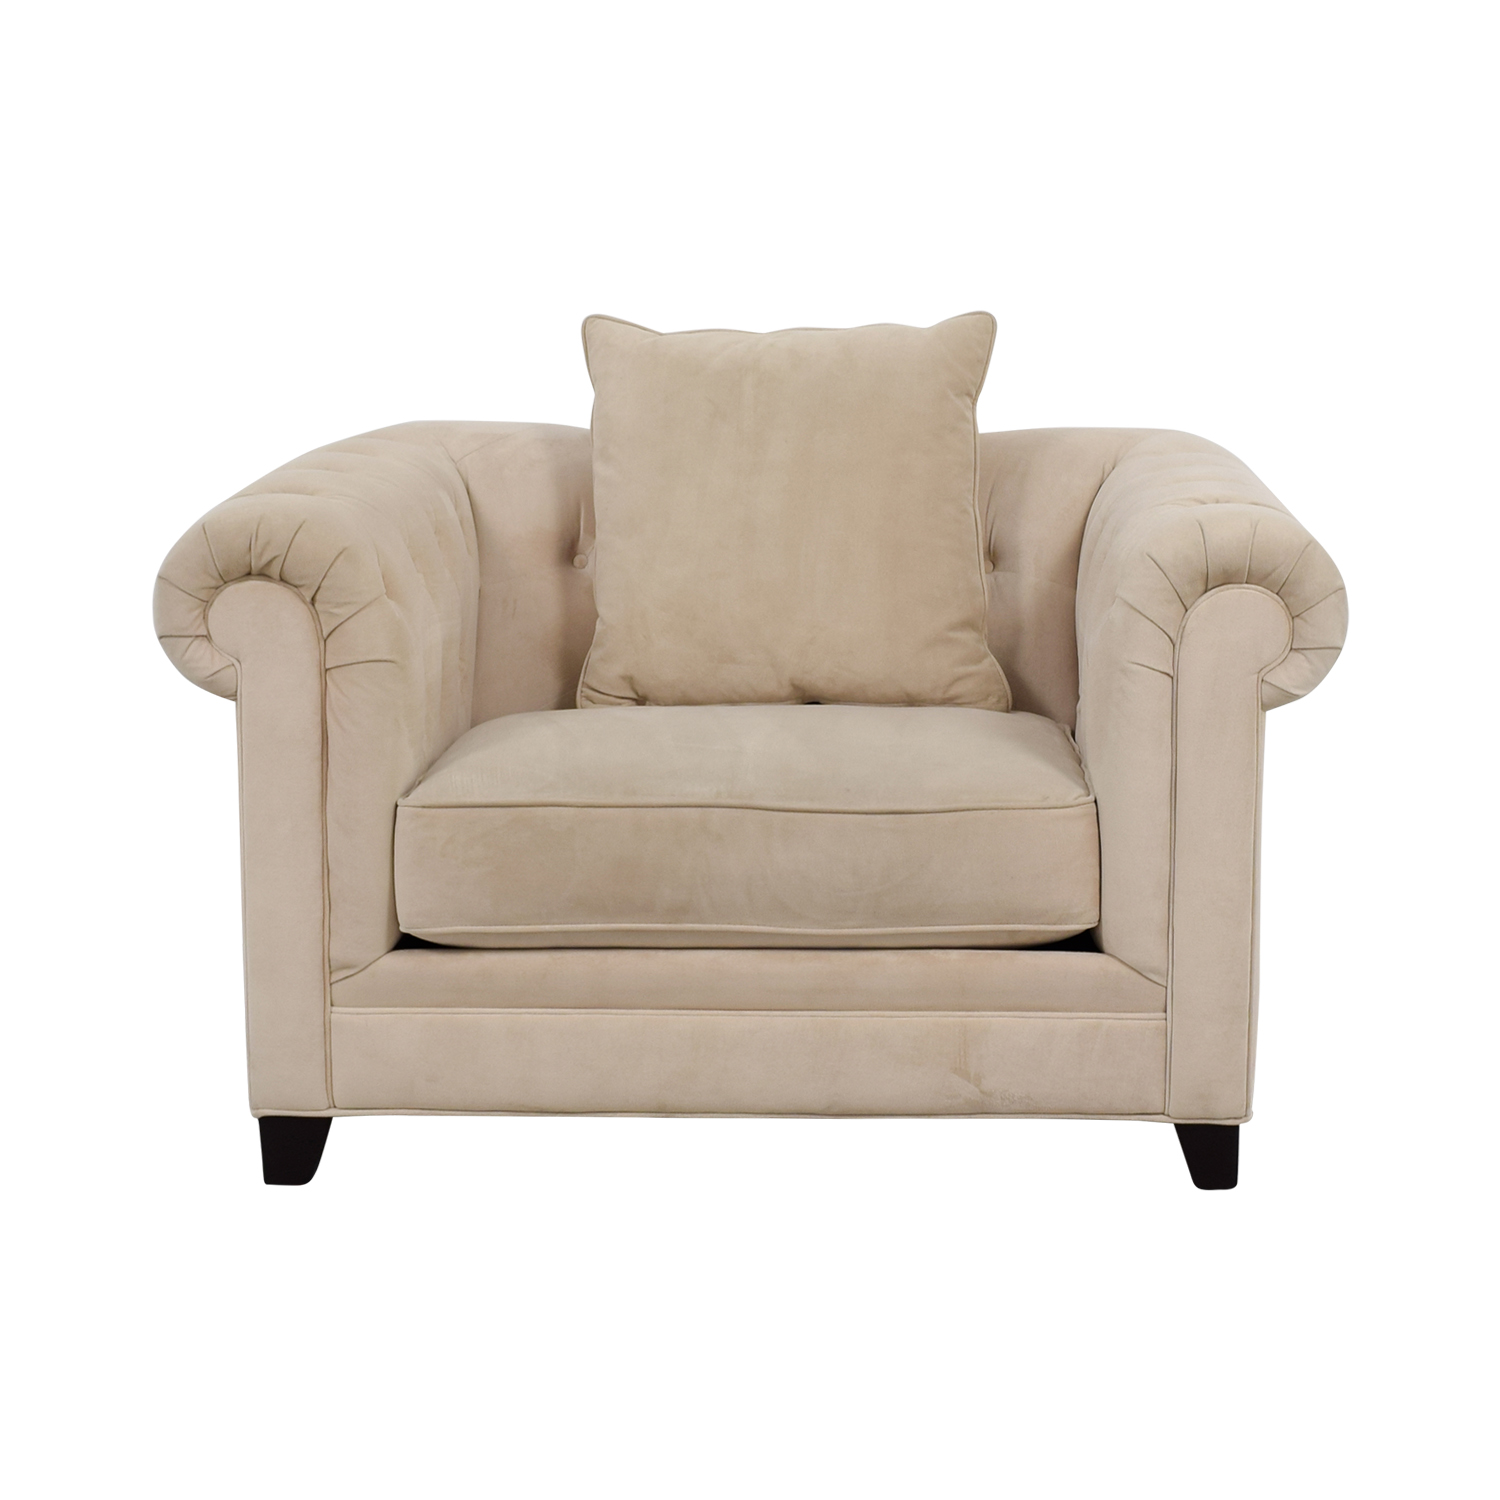 Martha Stewart for Macy's Off White Tufted Loveseat / Loveseats